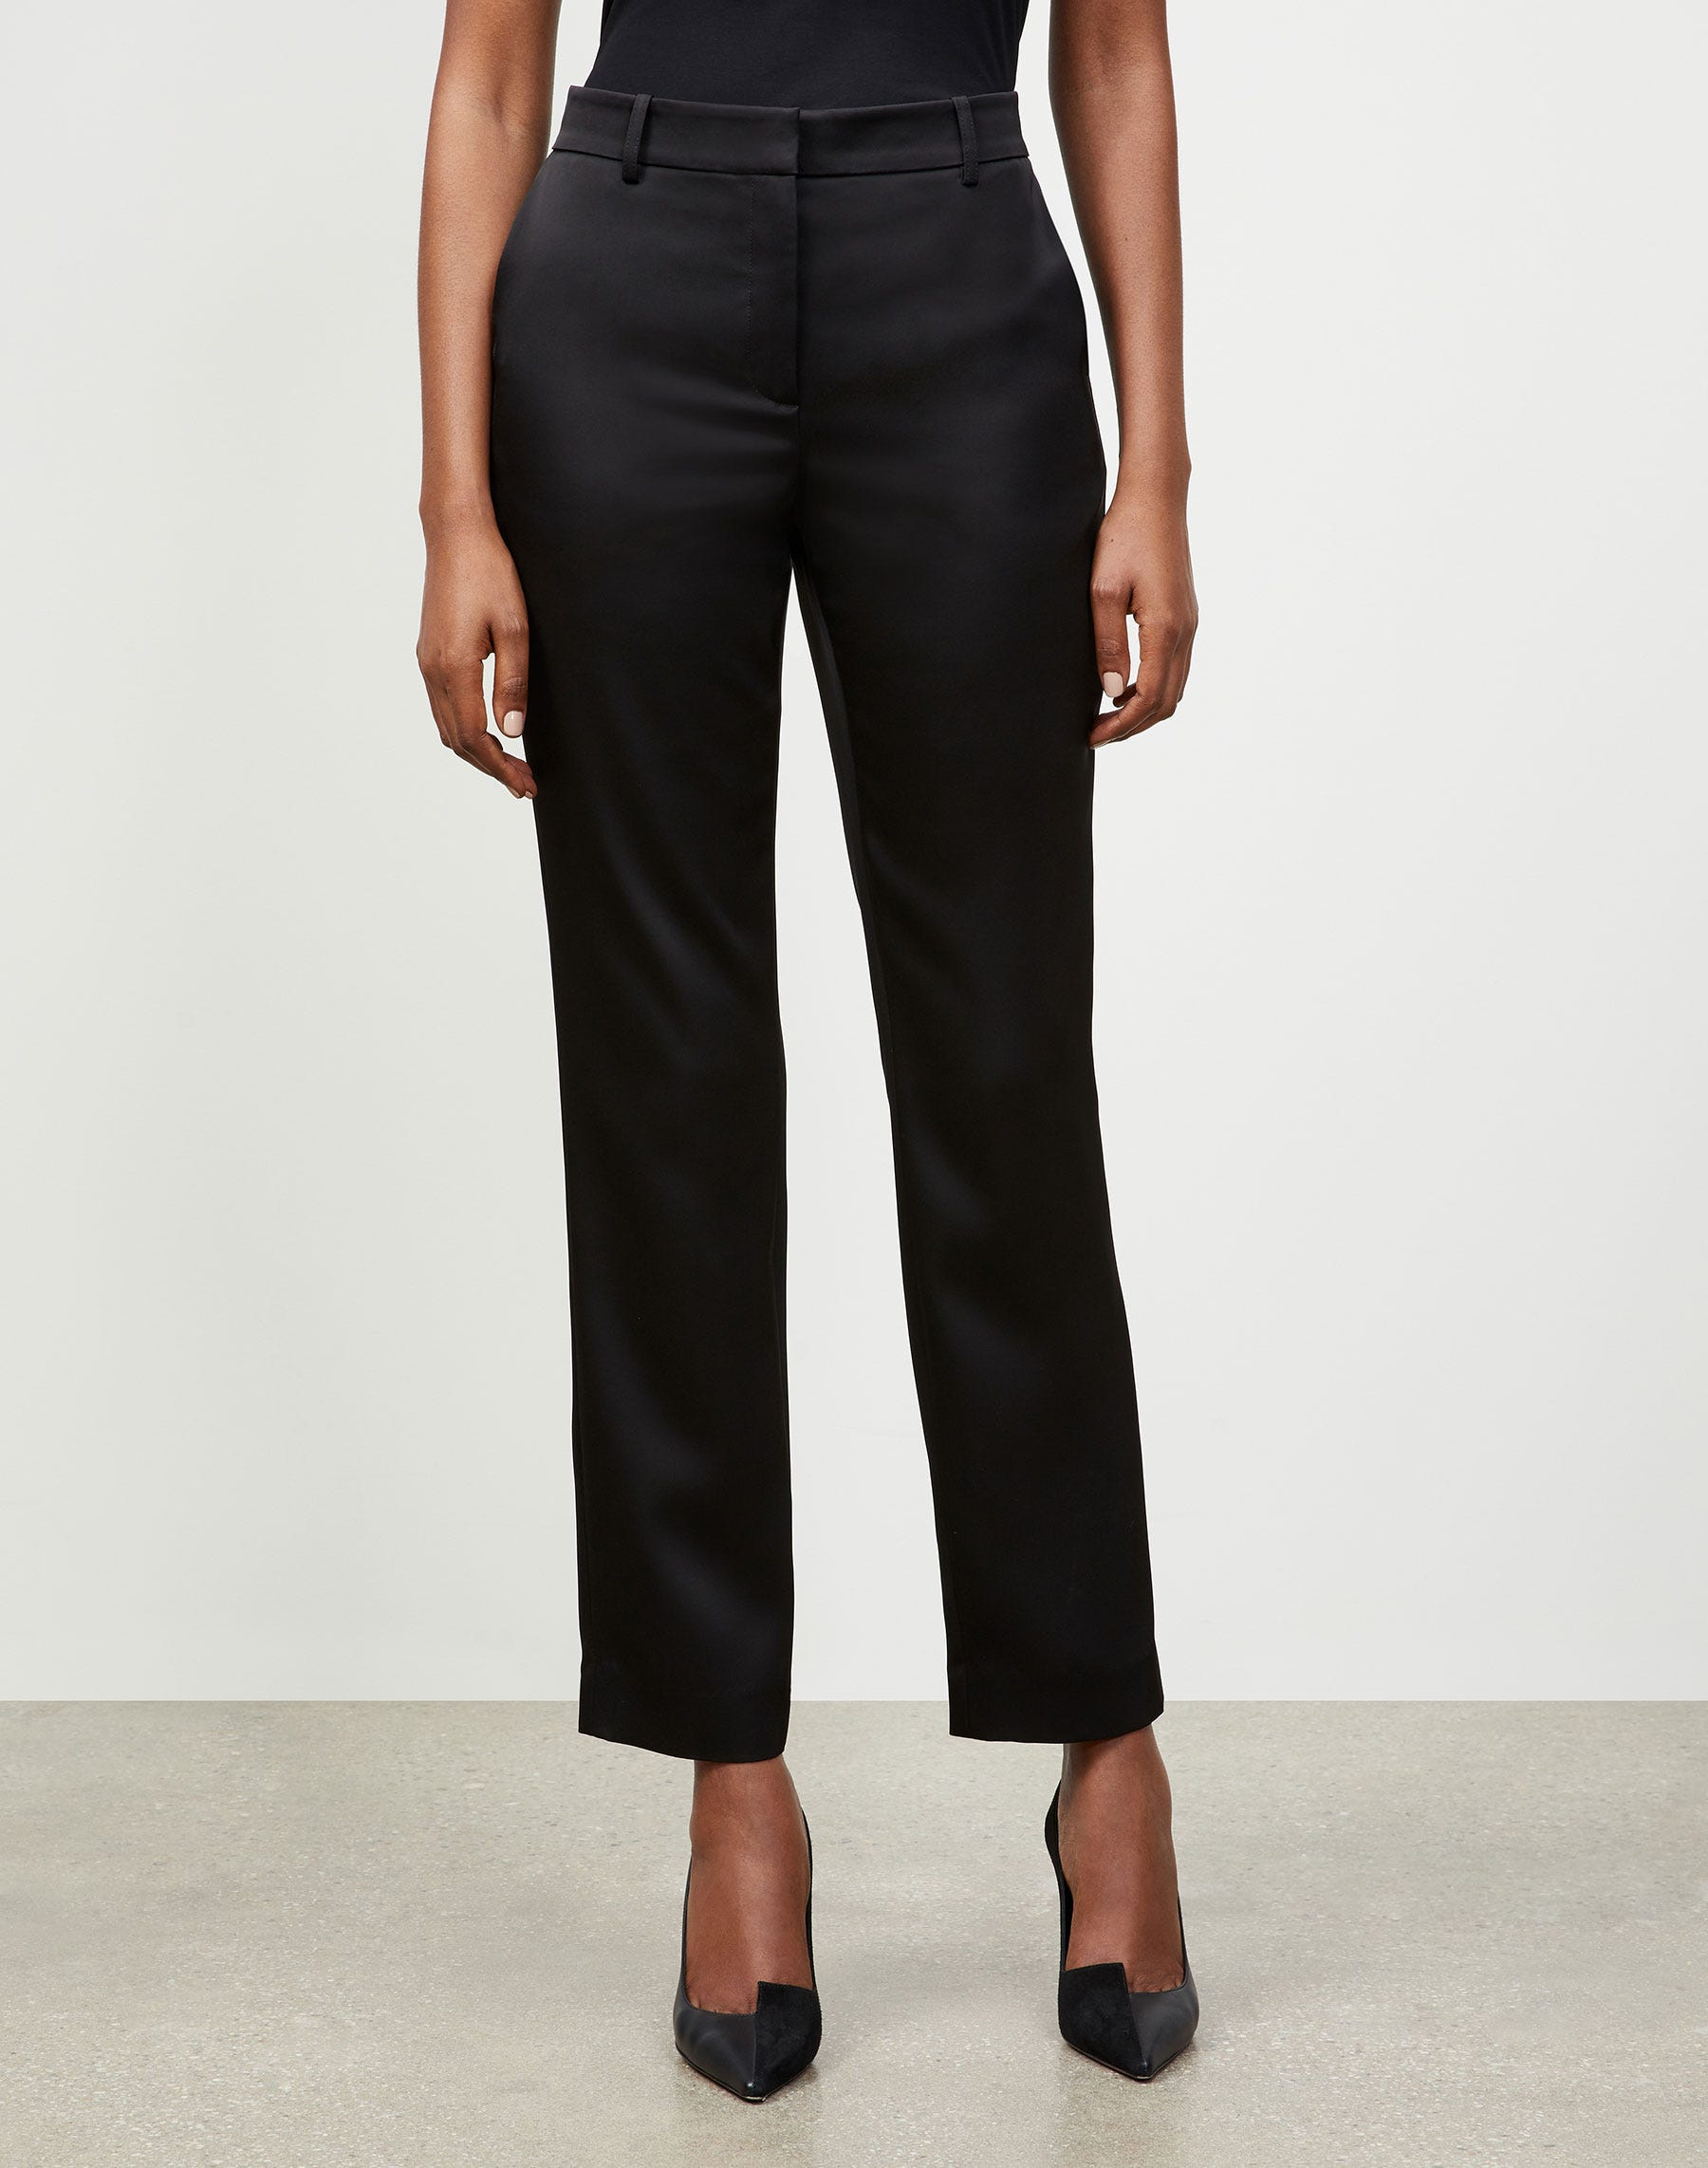 Lafayette 148 RADIANT SATIN CLOTH CLINTON PANT